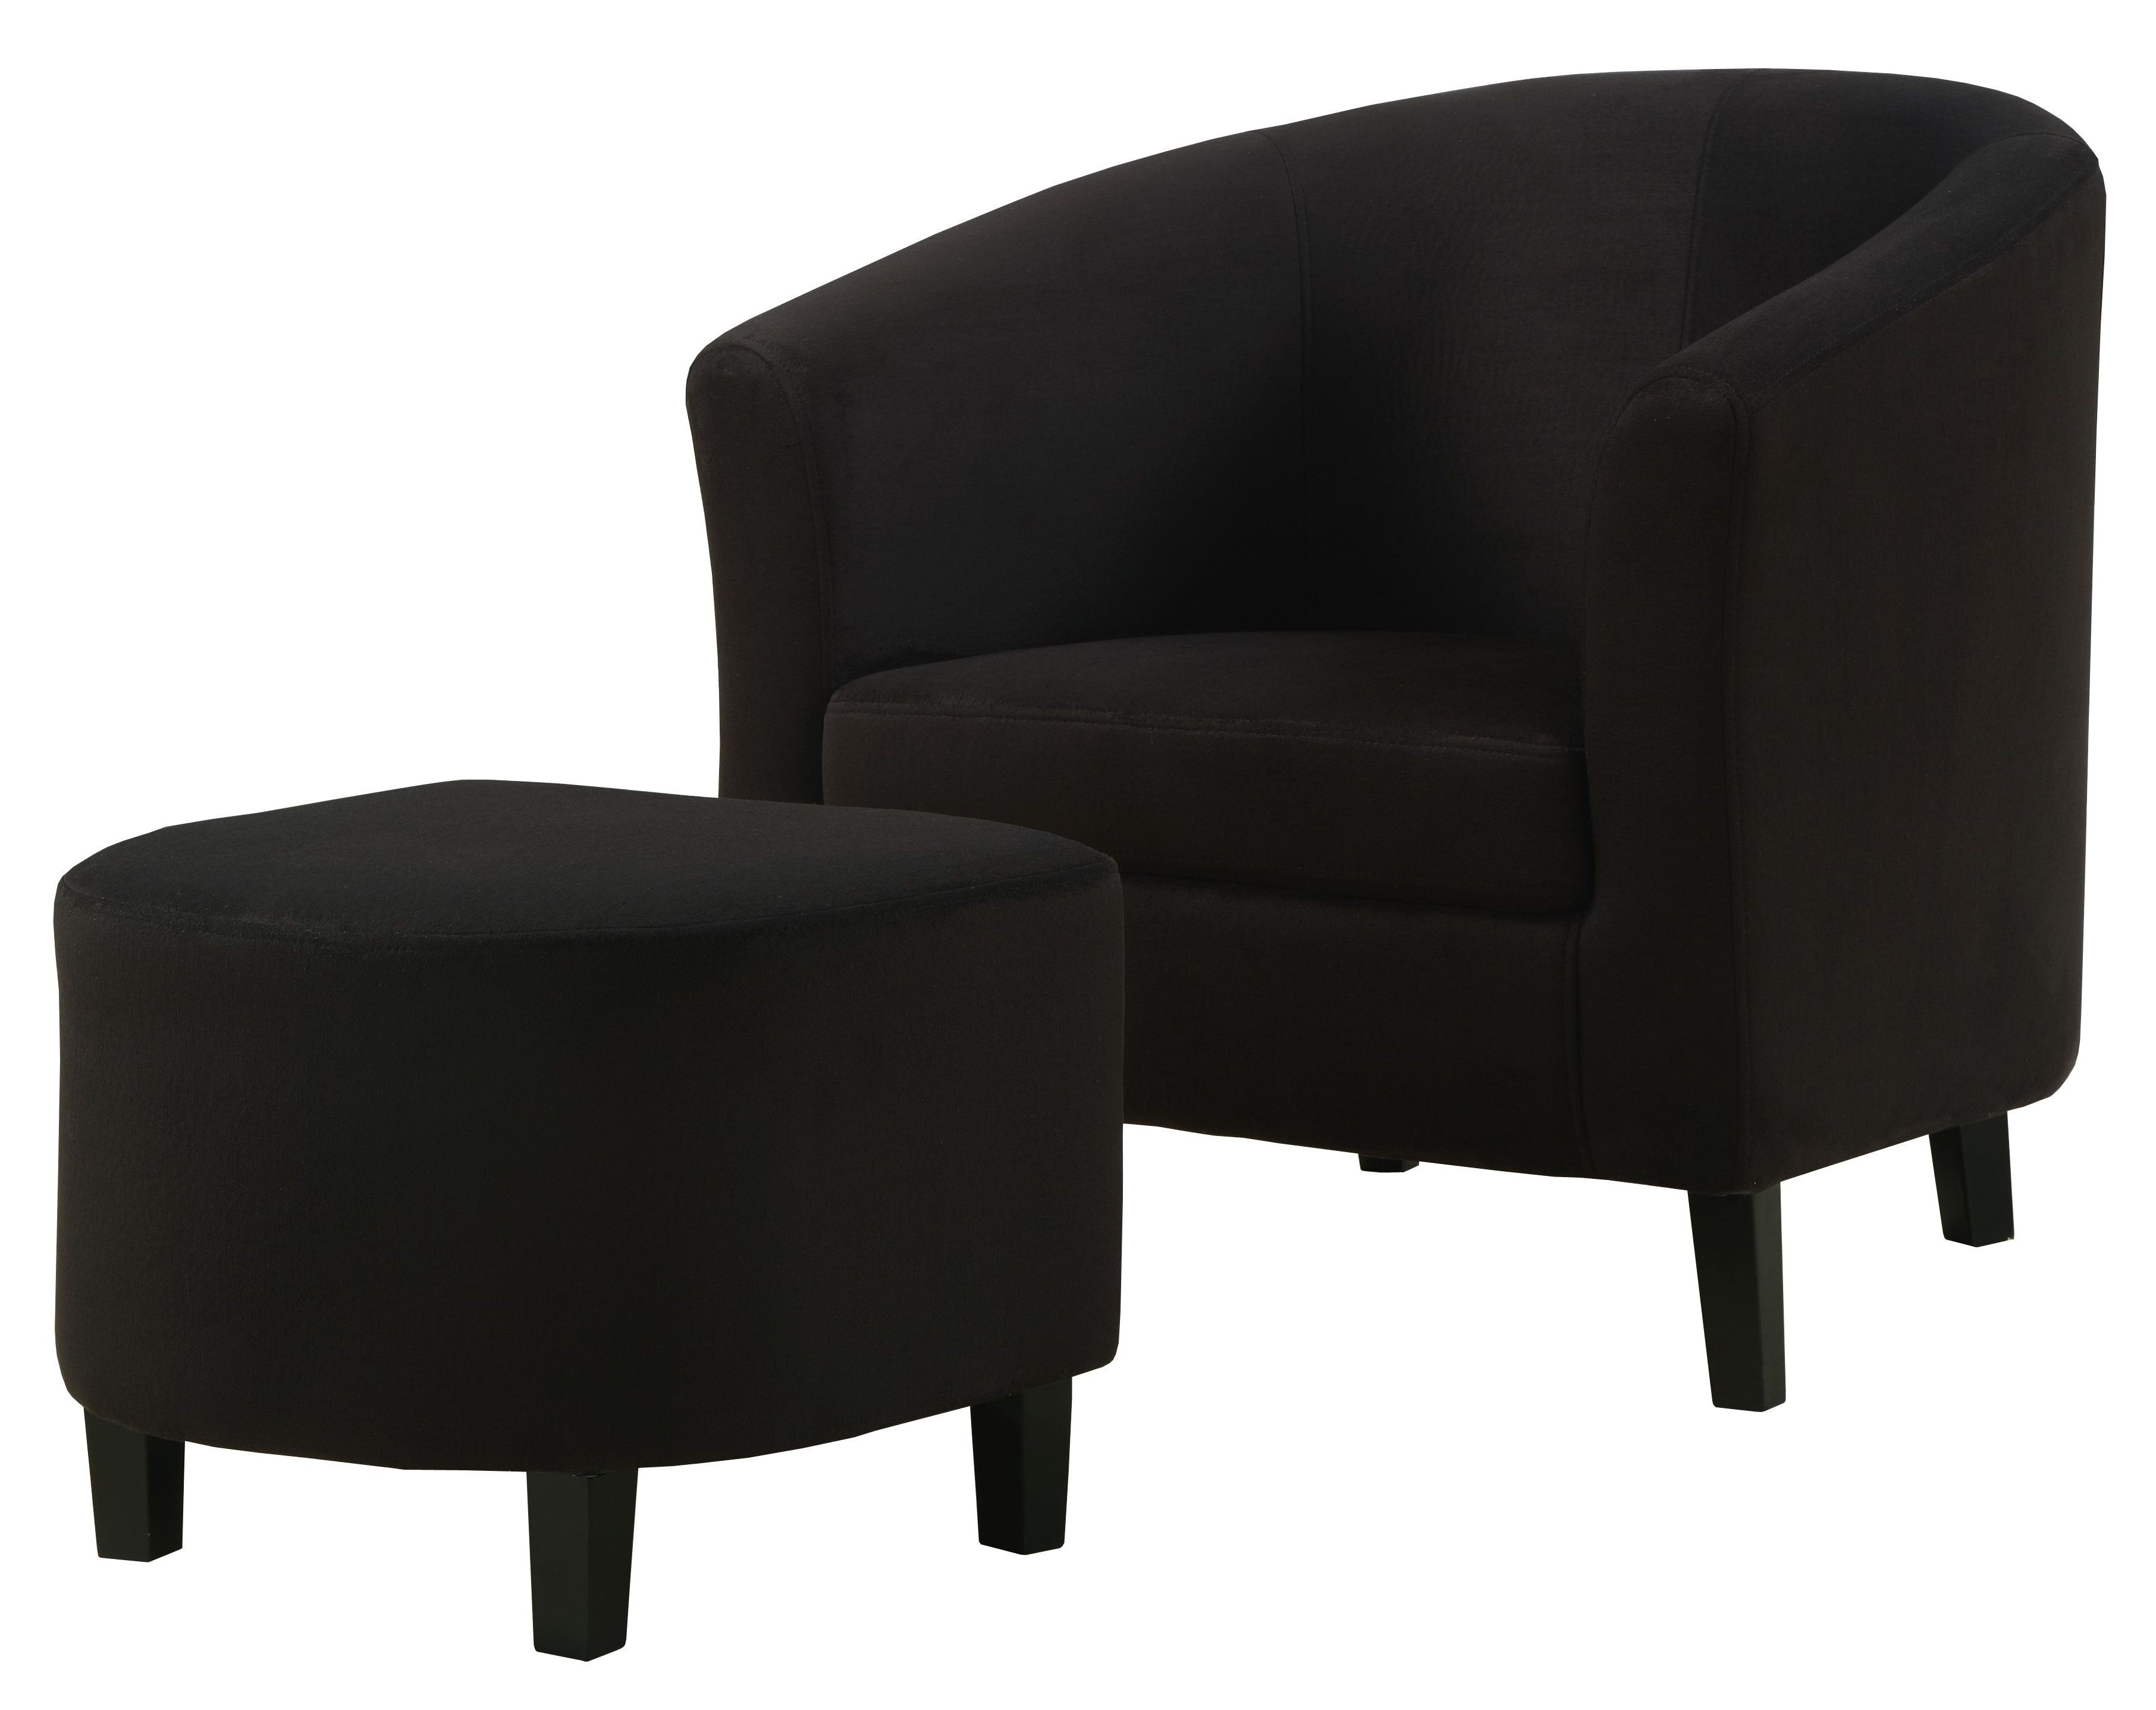 Black padded microfiber accent chair and ottoman from